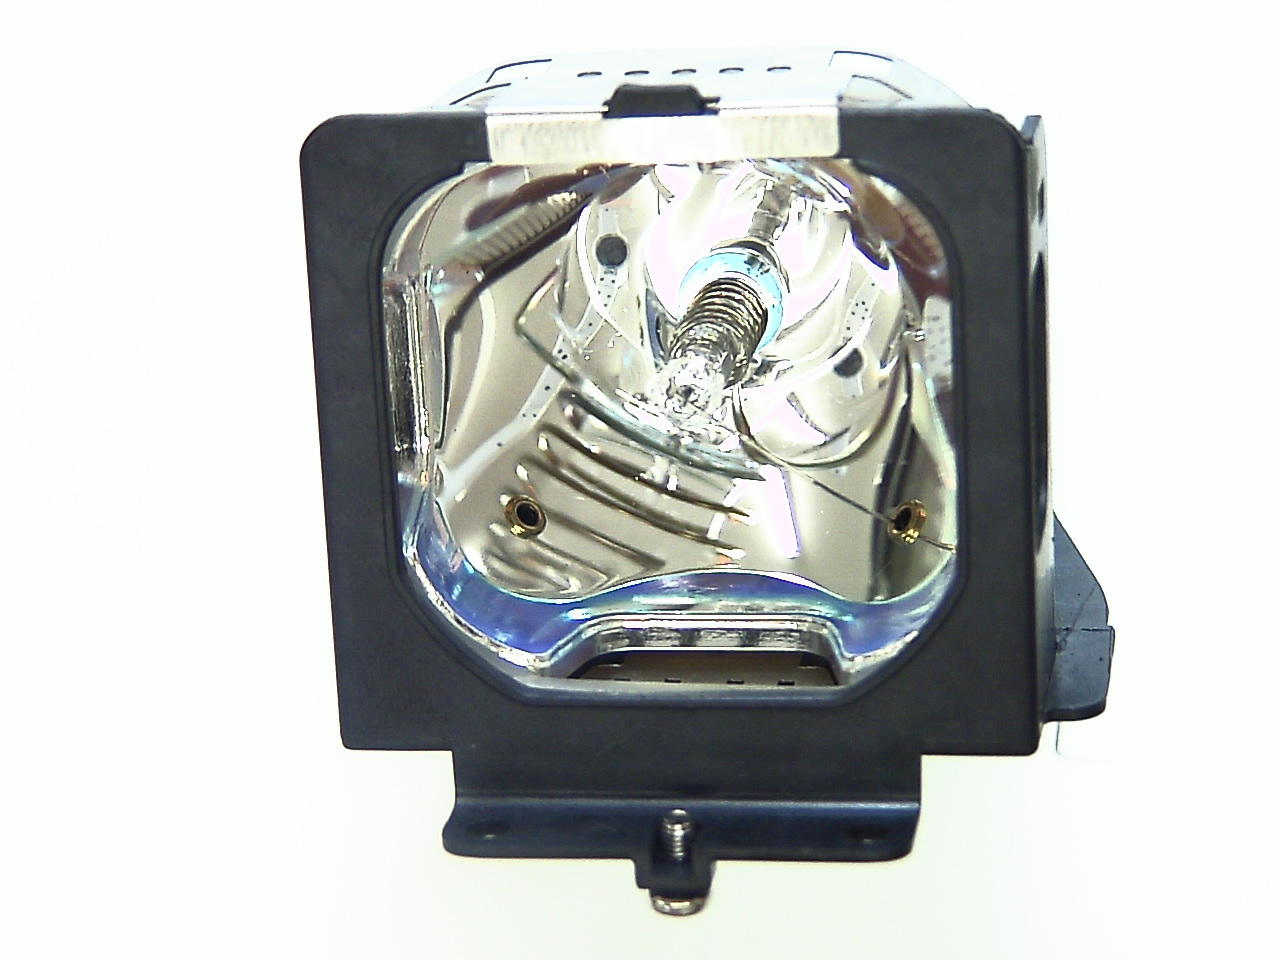 Diamond Lamps 610-301-0144-DL projector lamp 132 W UHP